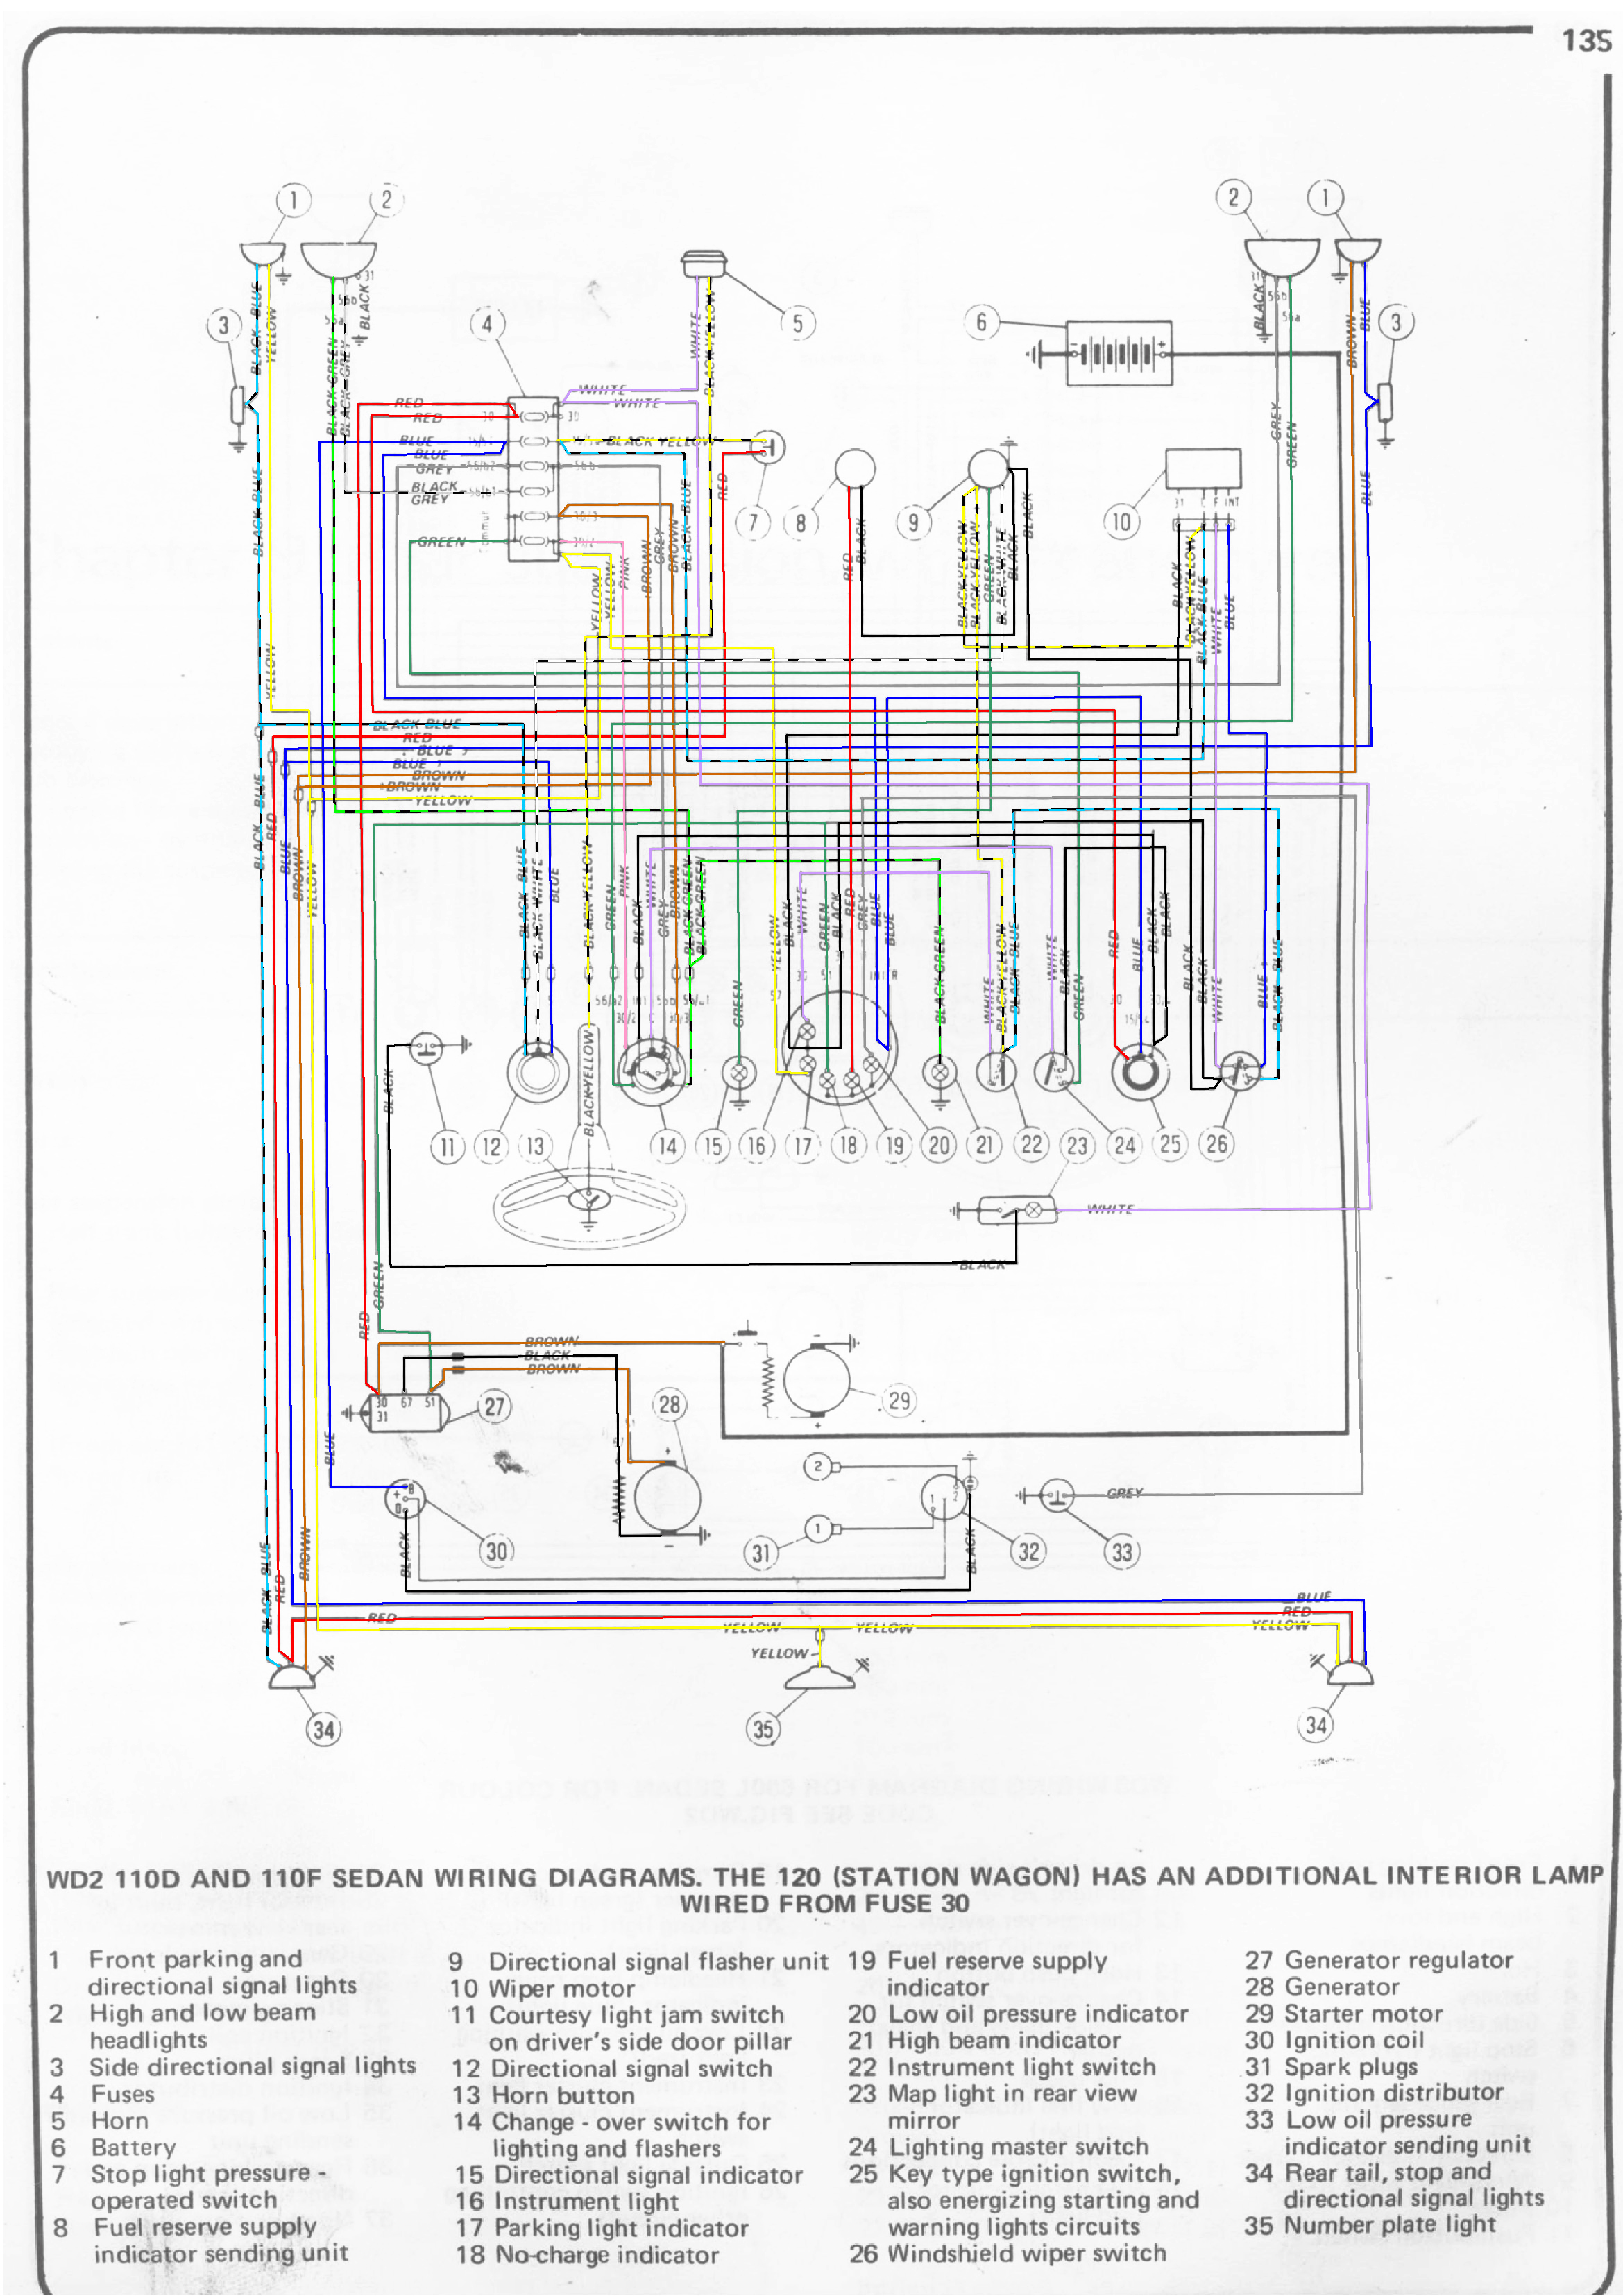 Fiat Grande Punto Wiring Diagram Pdf 36 Images Fuse Box For 500 Diagramt1508407624 2012